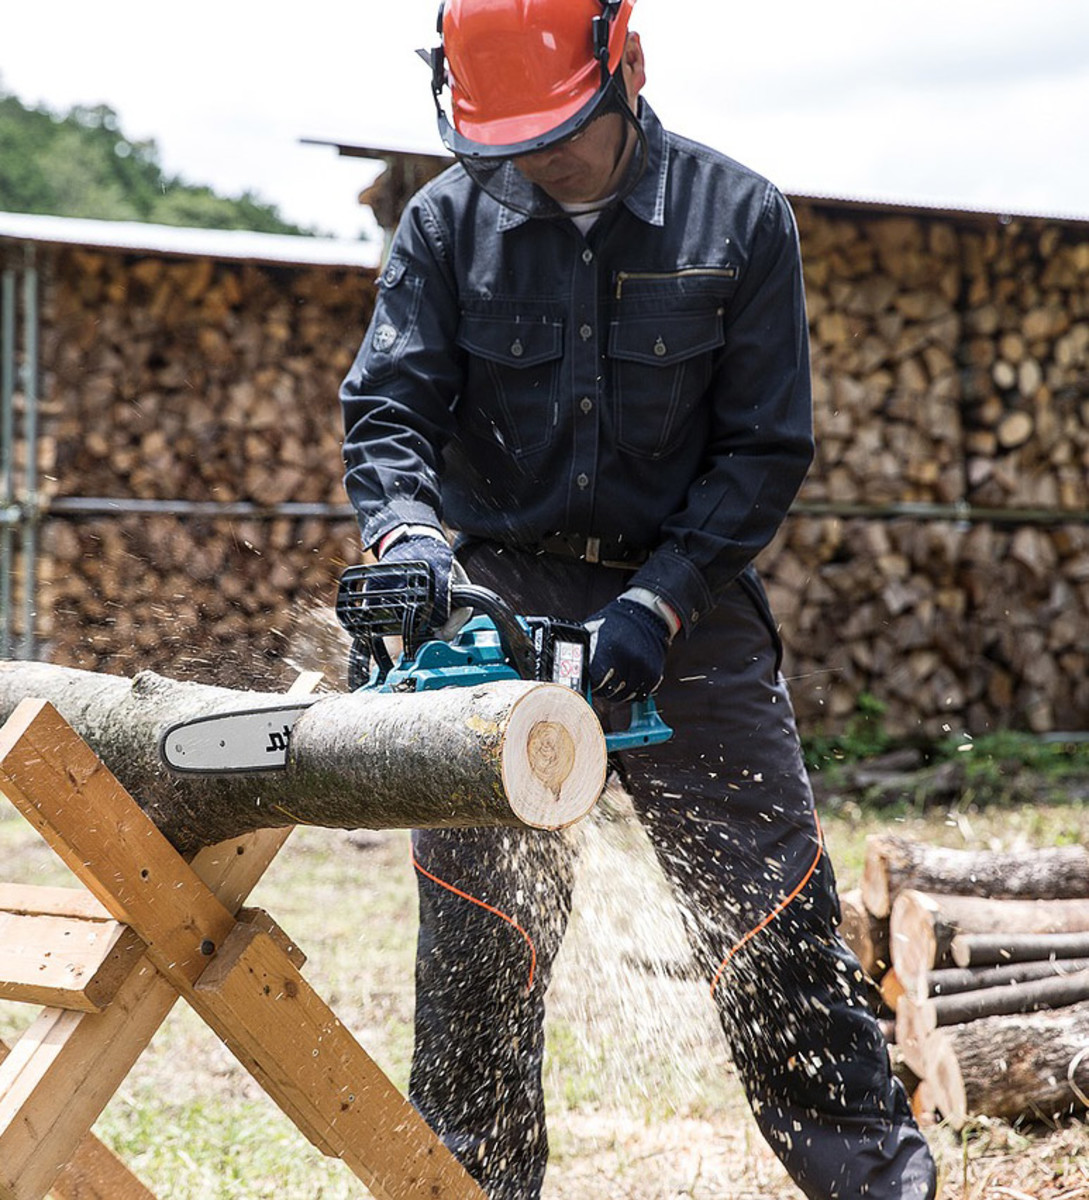 Chainsaws make quick work of cutting logs, as well as tree felling.